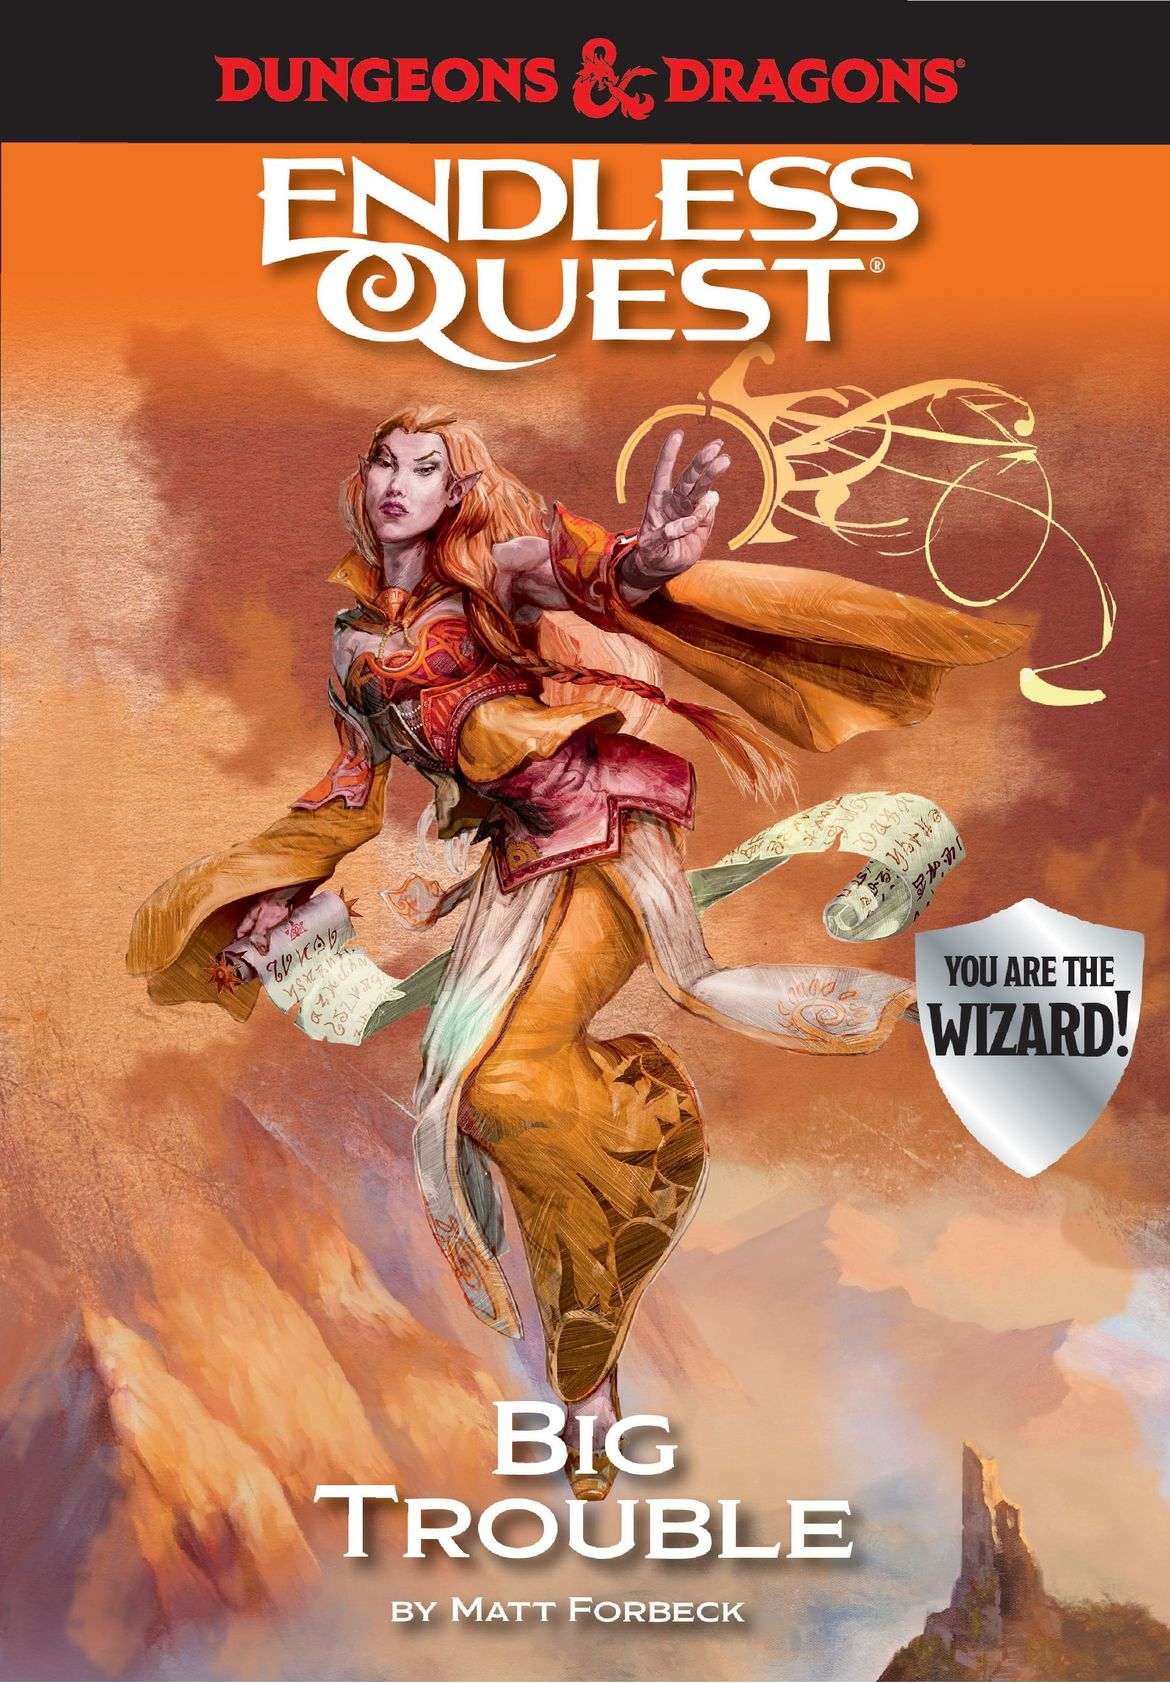 Dungeons & Dragons Endless Quest: Big Trouble